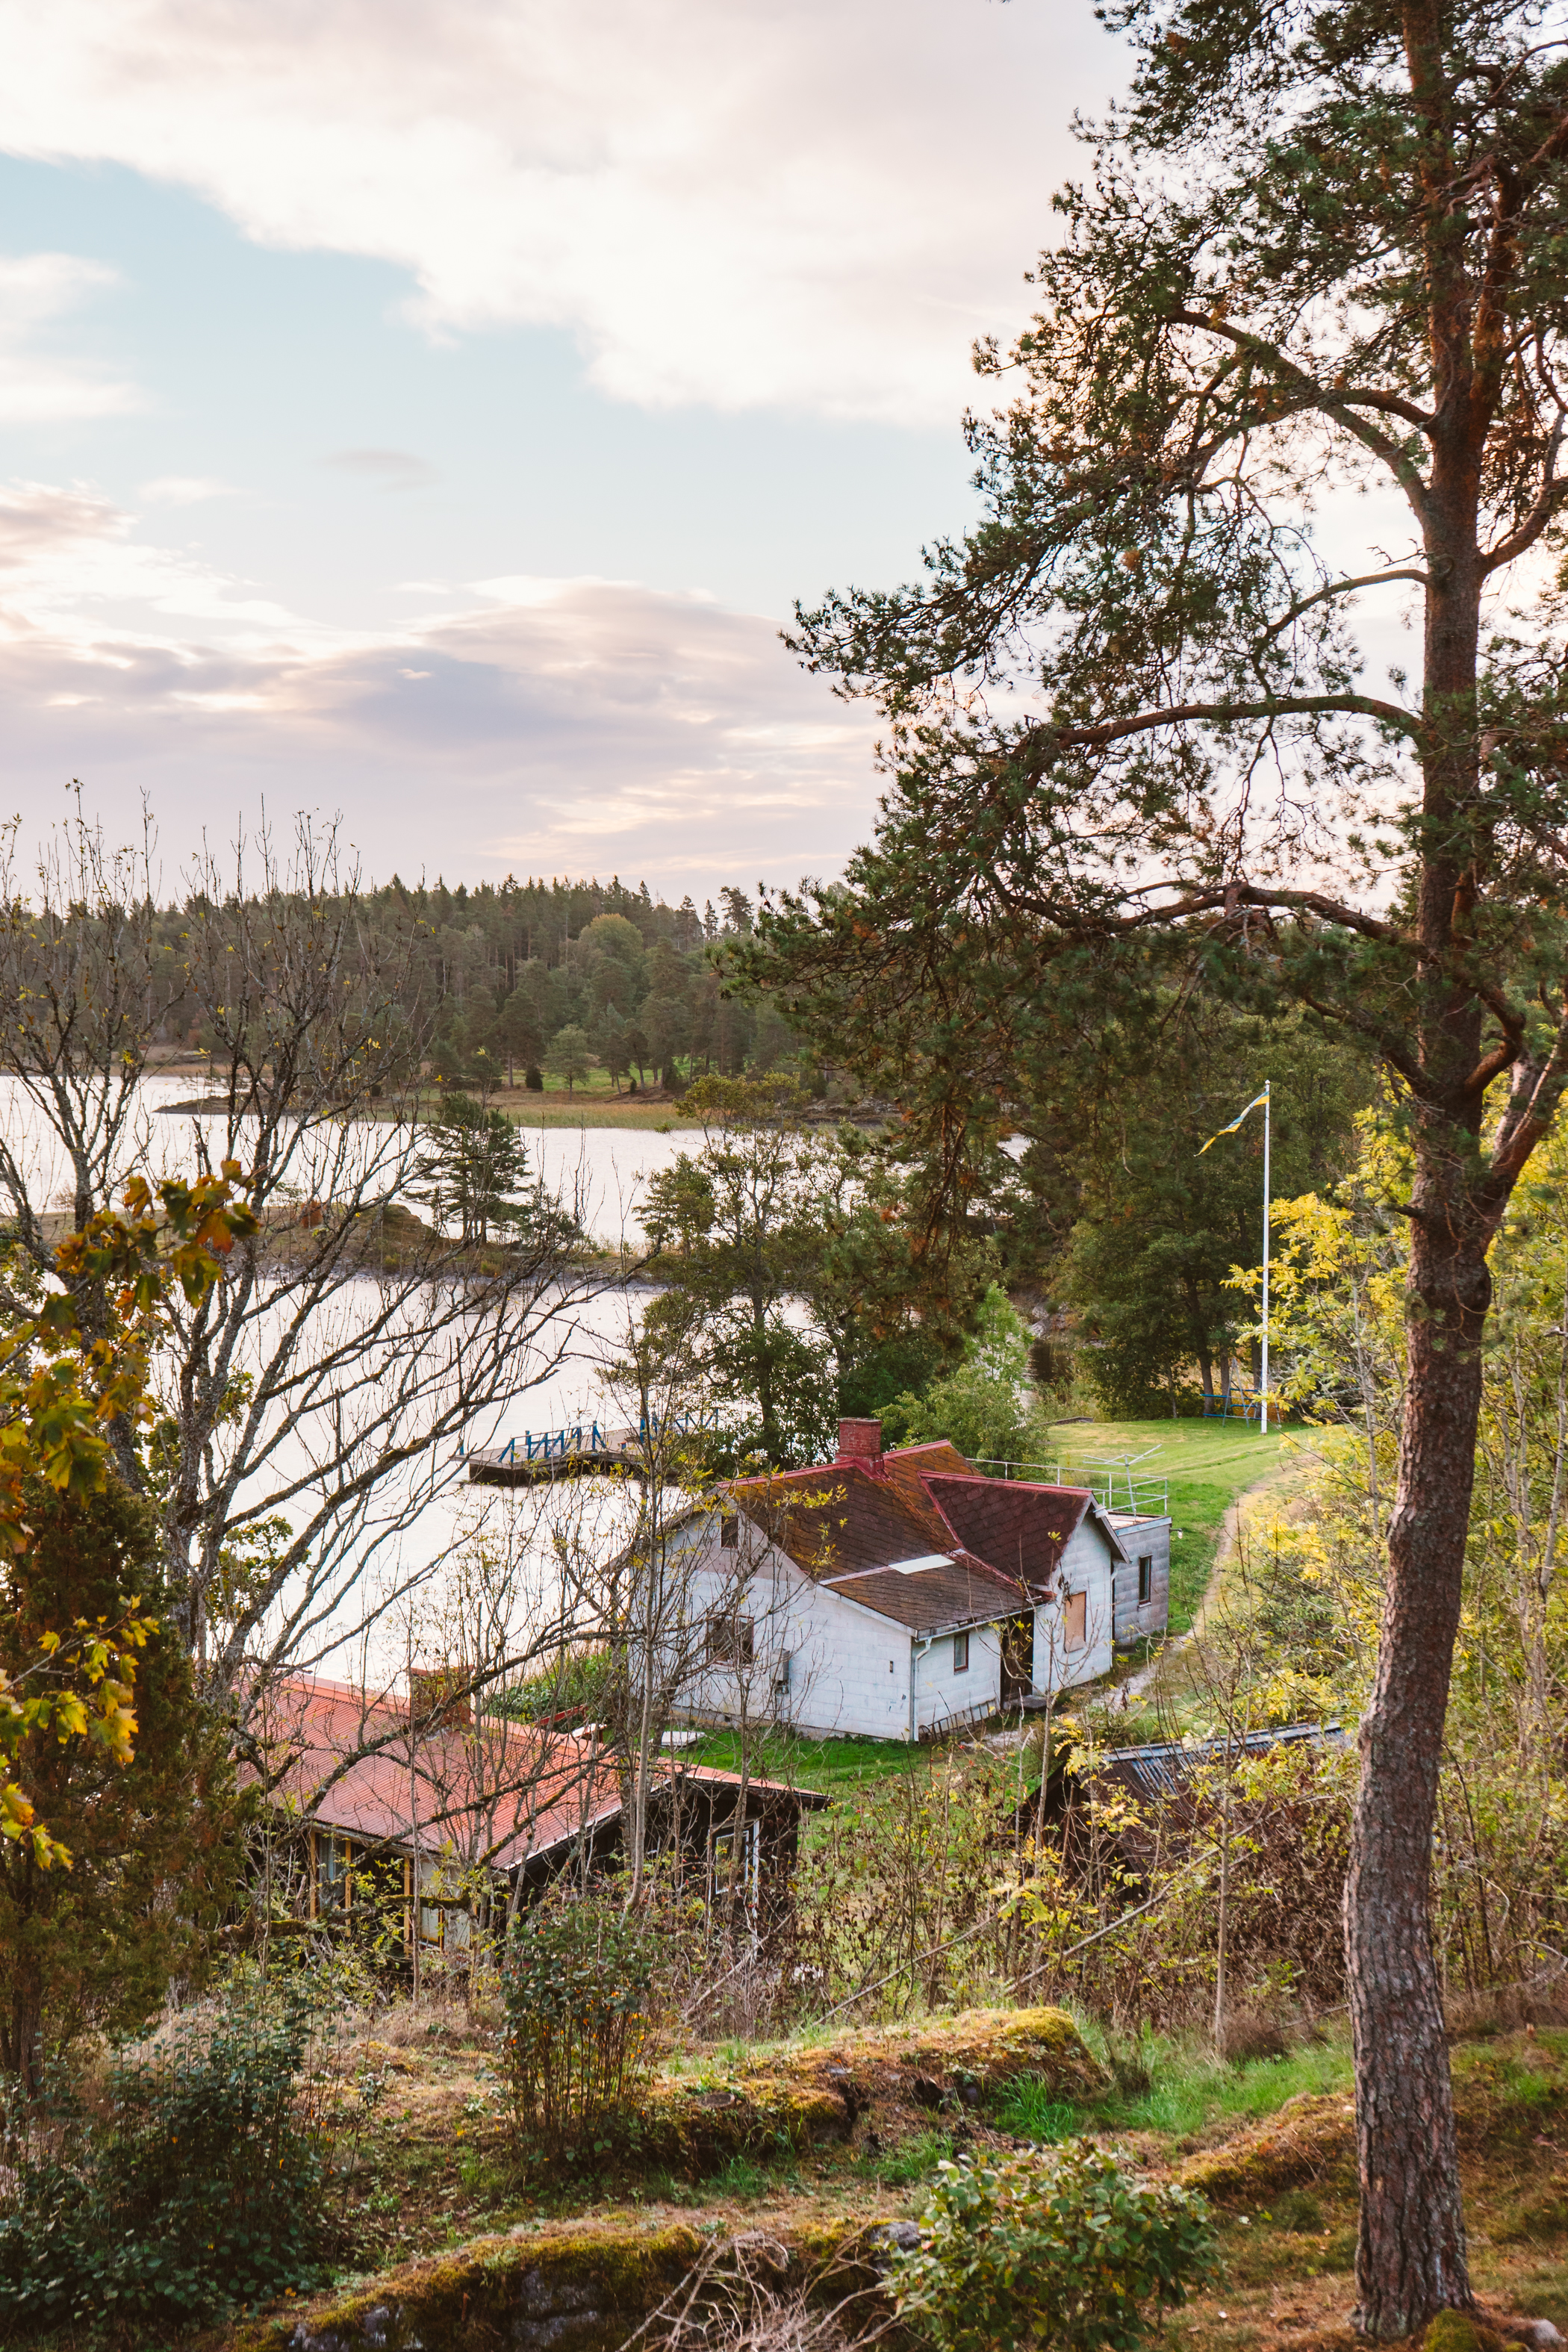 Dalsland, Sweden by Jessie May